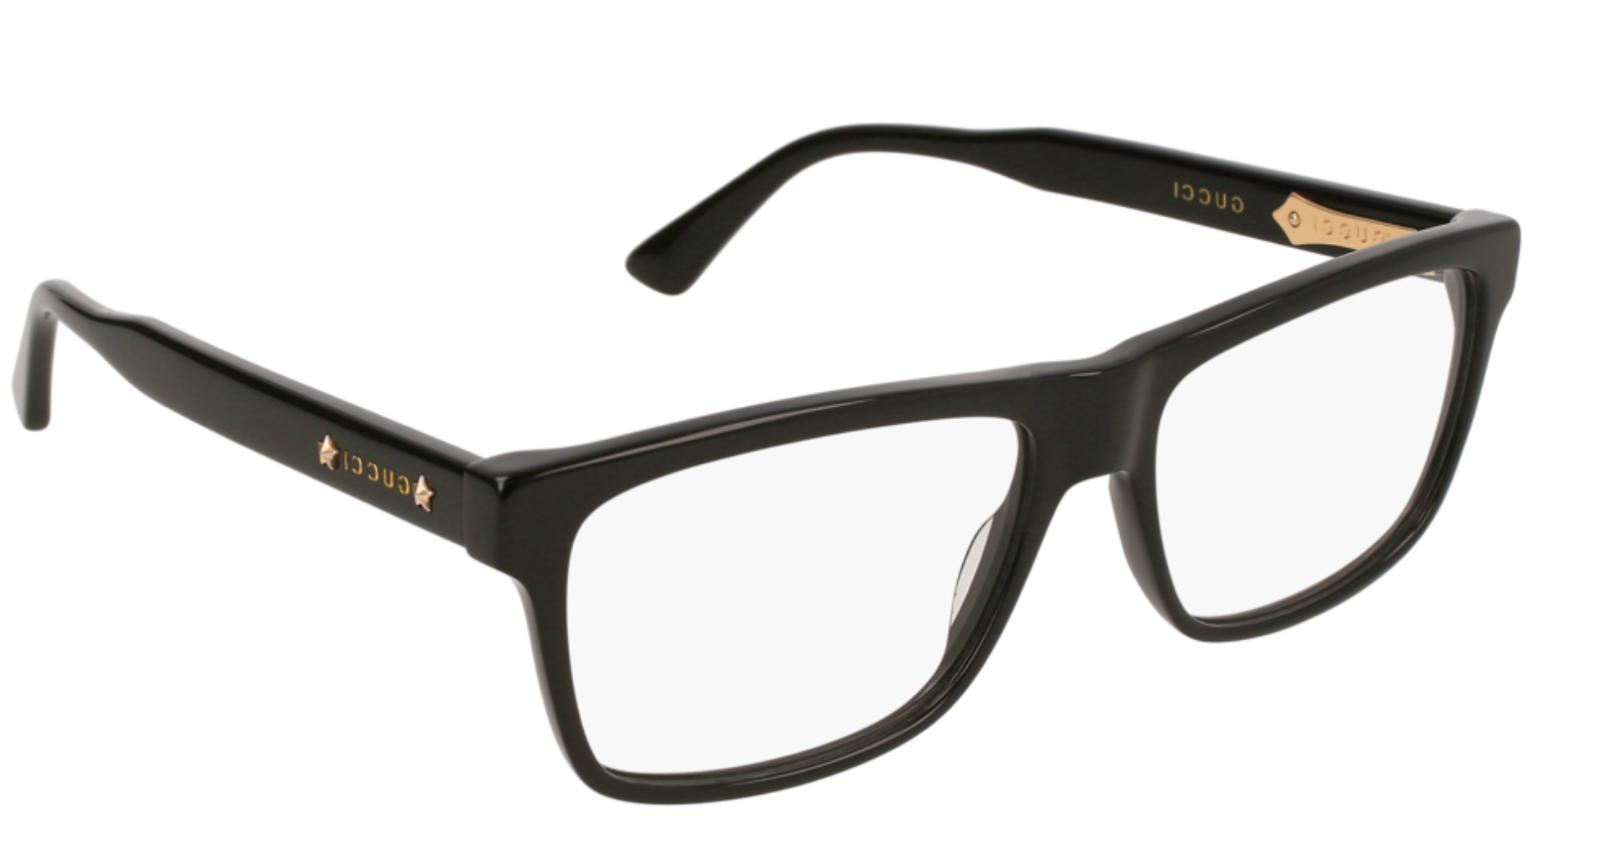 Gucci GG0269O 001 Eyeglasses Shiny Black Frame 56mm